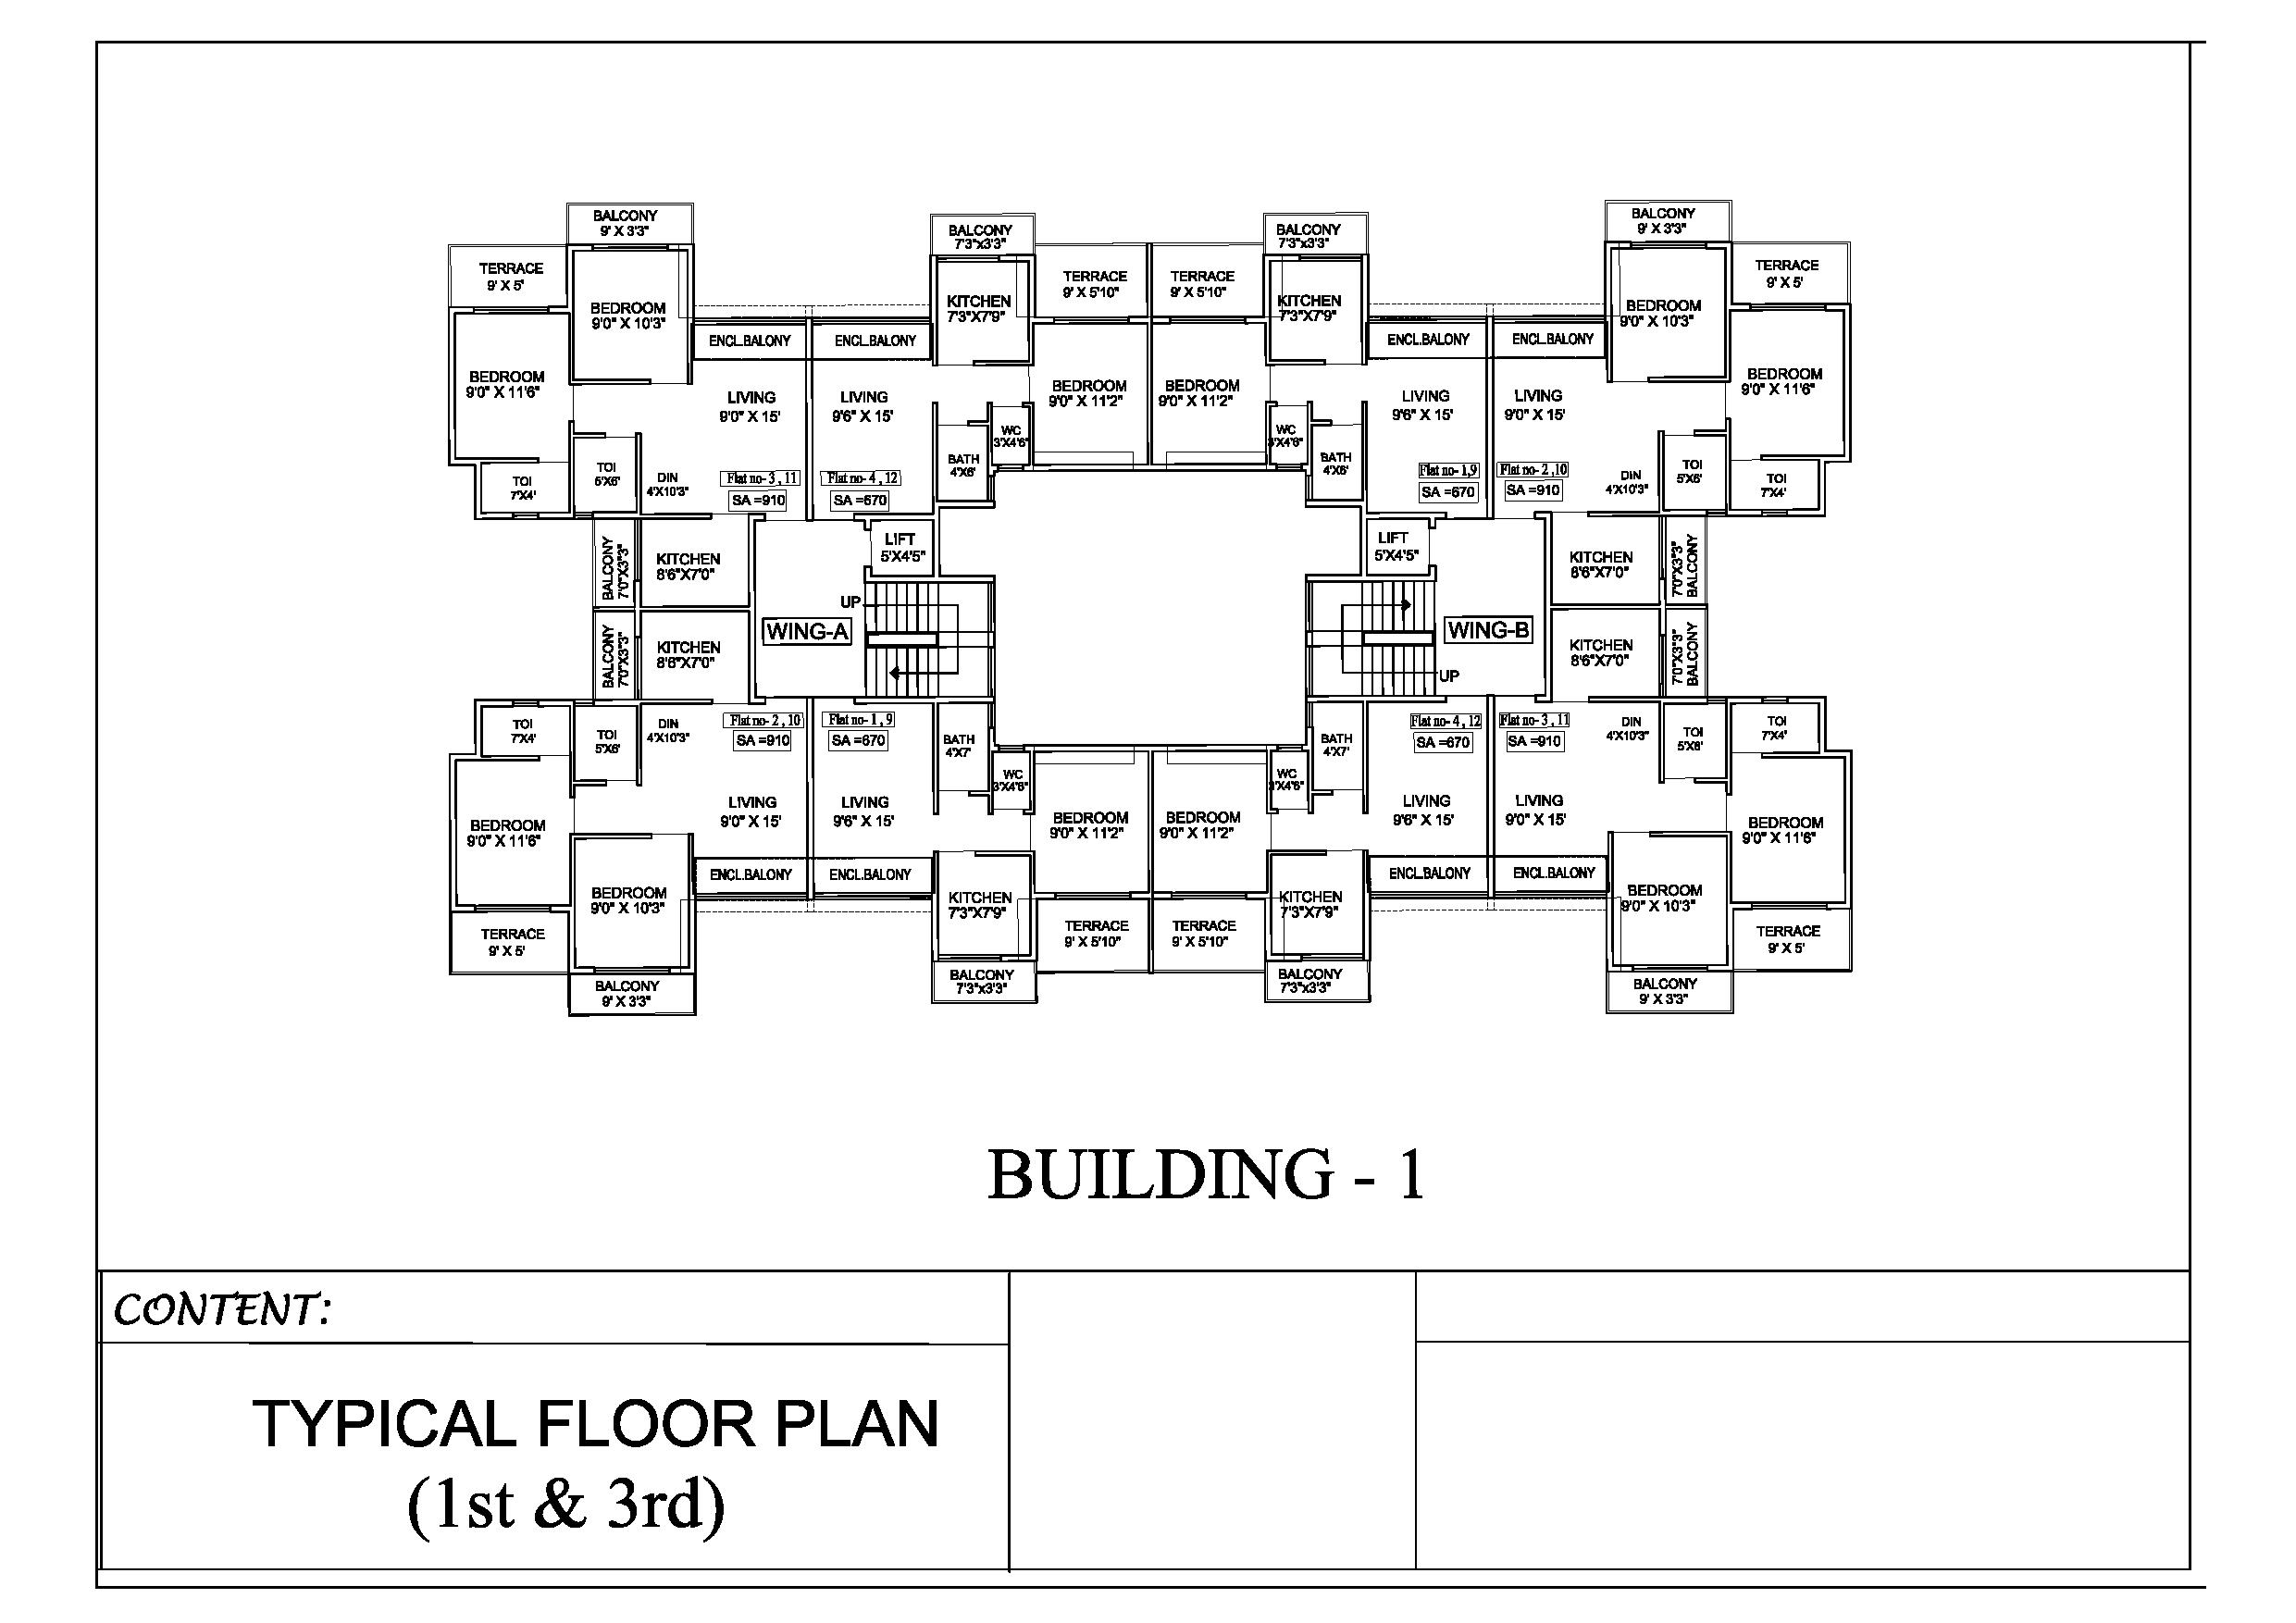 Typical Floor Plan A 1-3 Bldg. 1.jpg